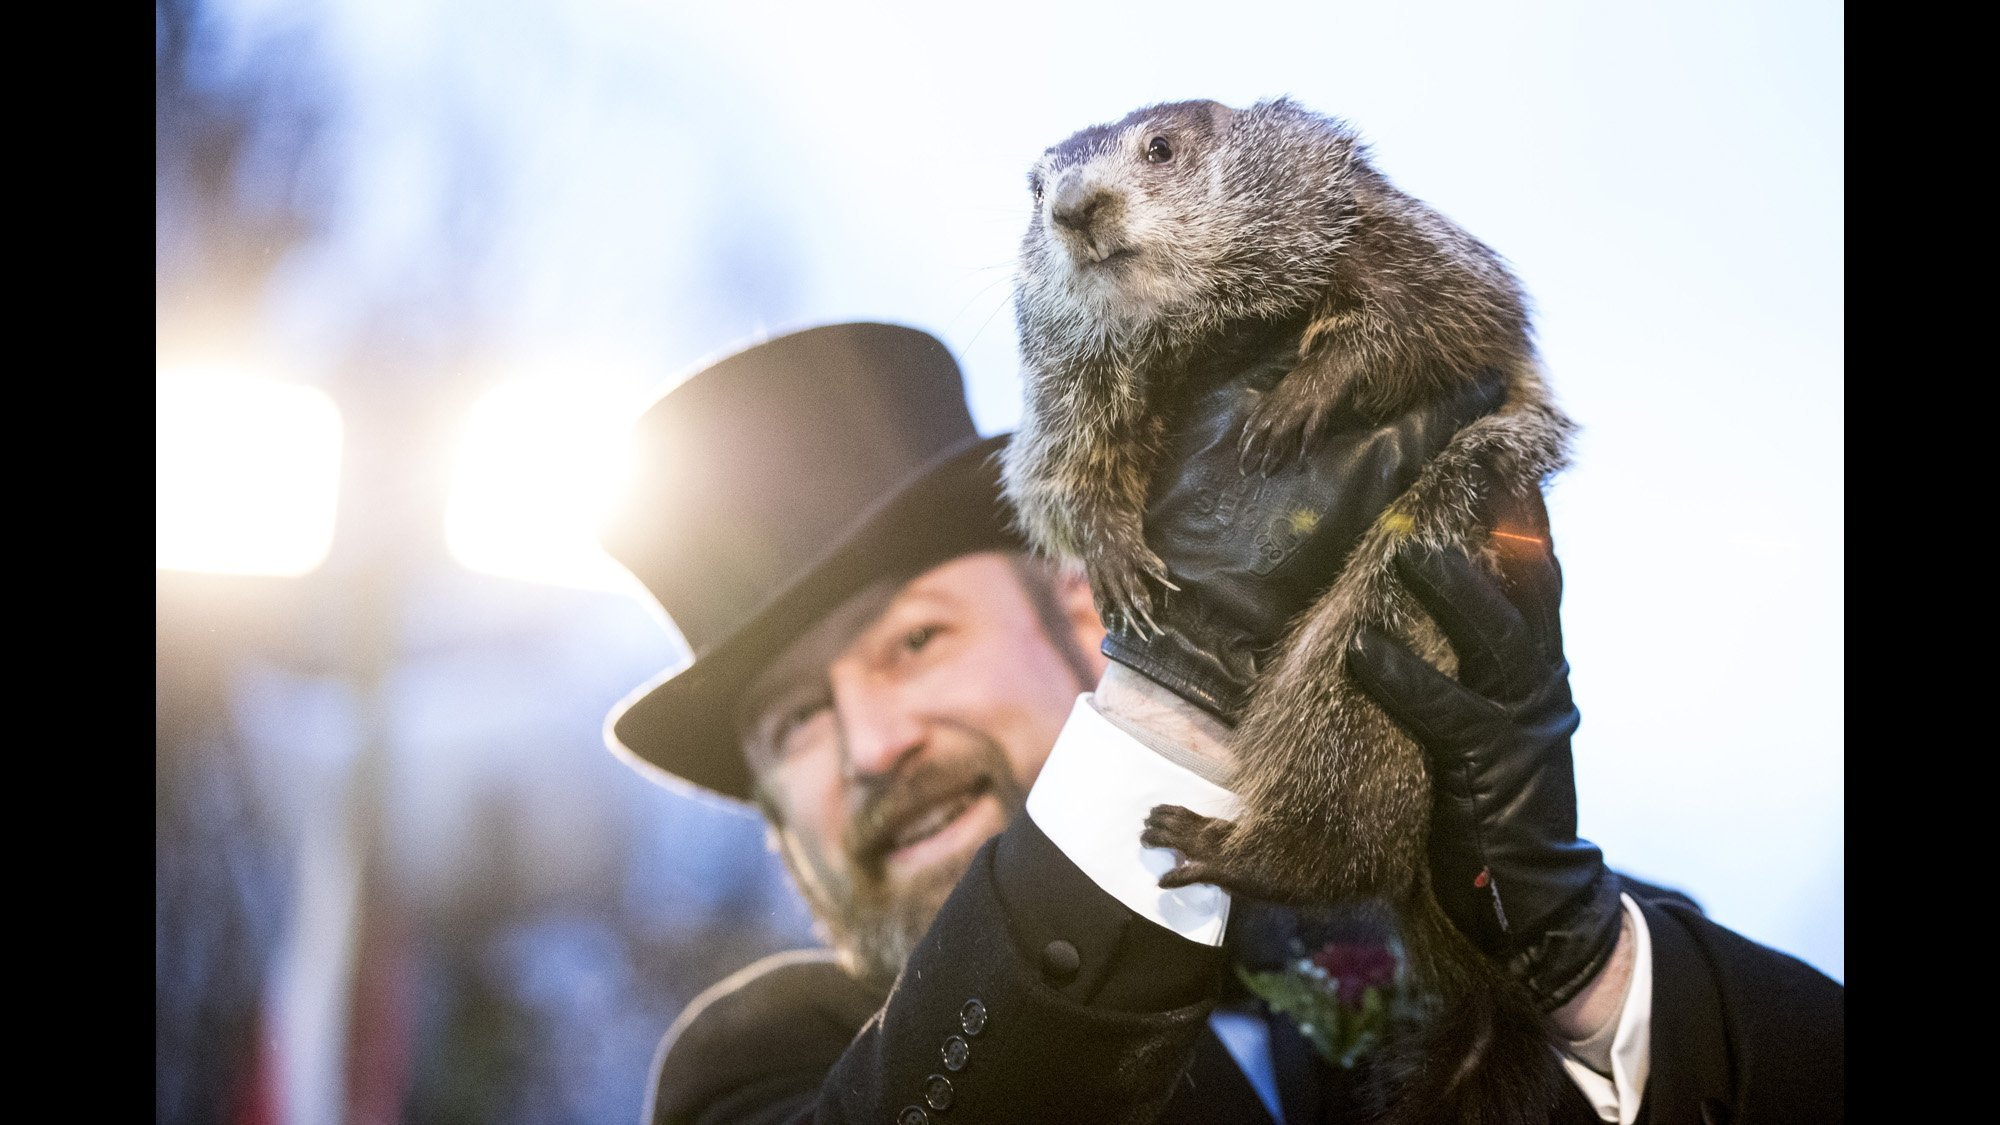 Groundhog Predicts An Early Spring Don T Get Too Excited